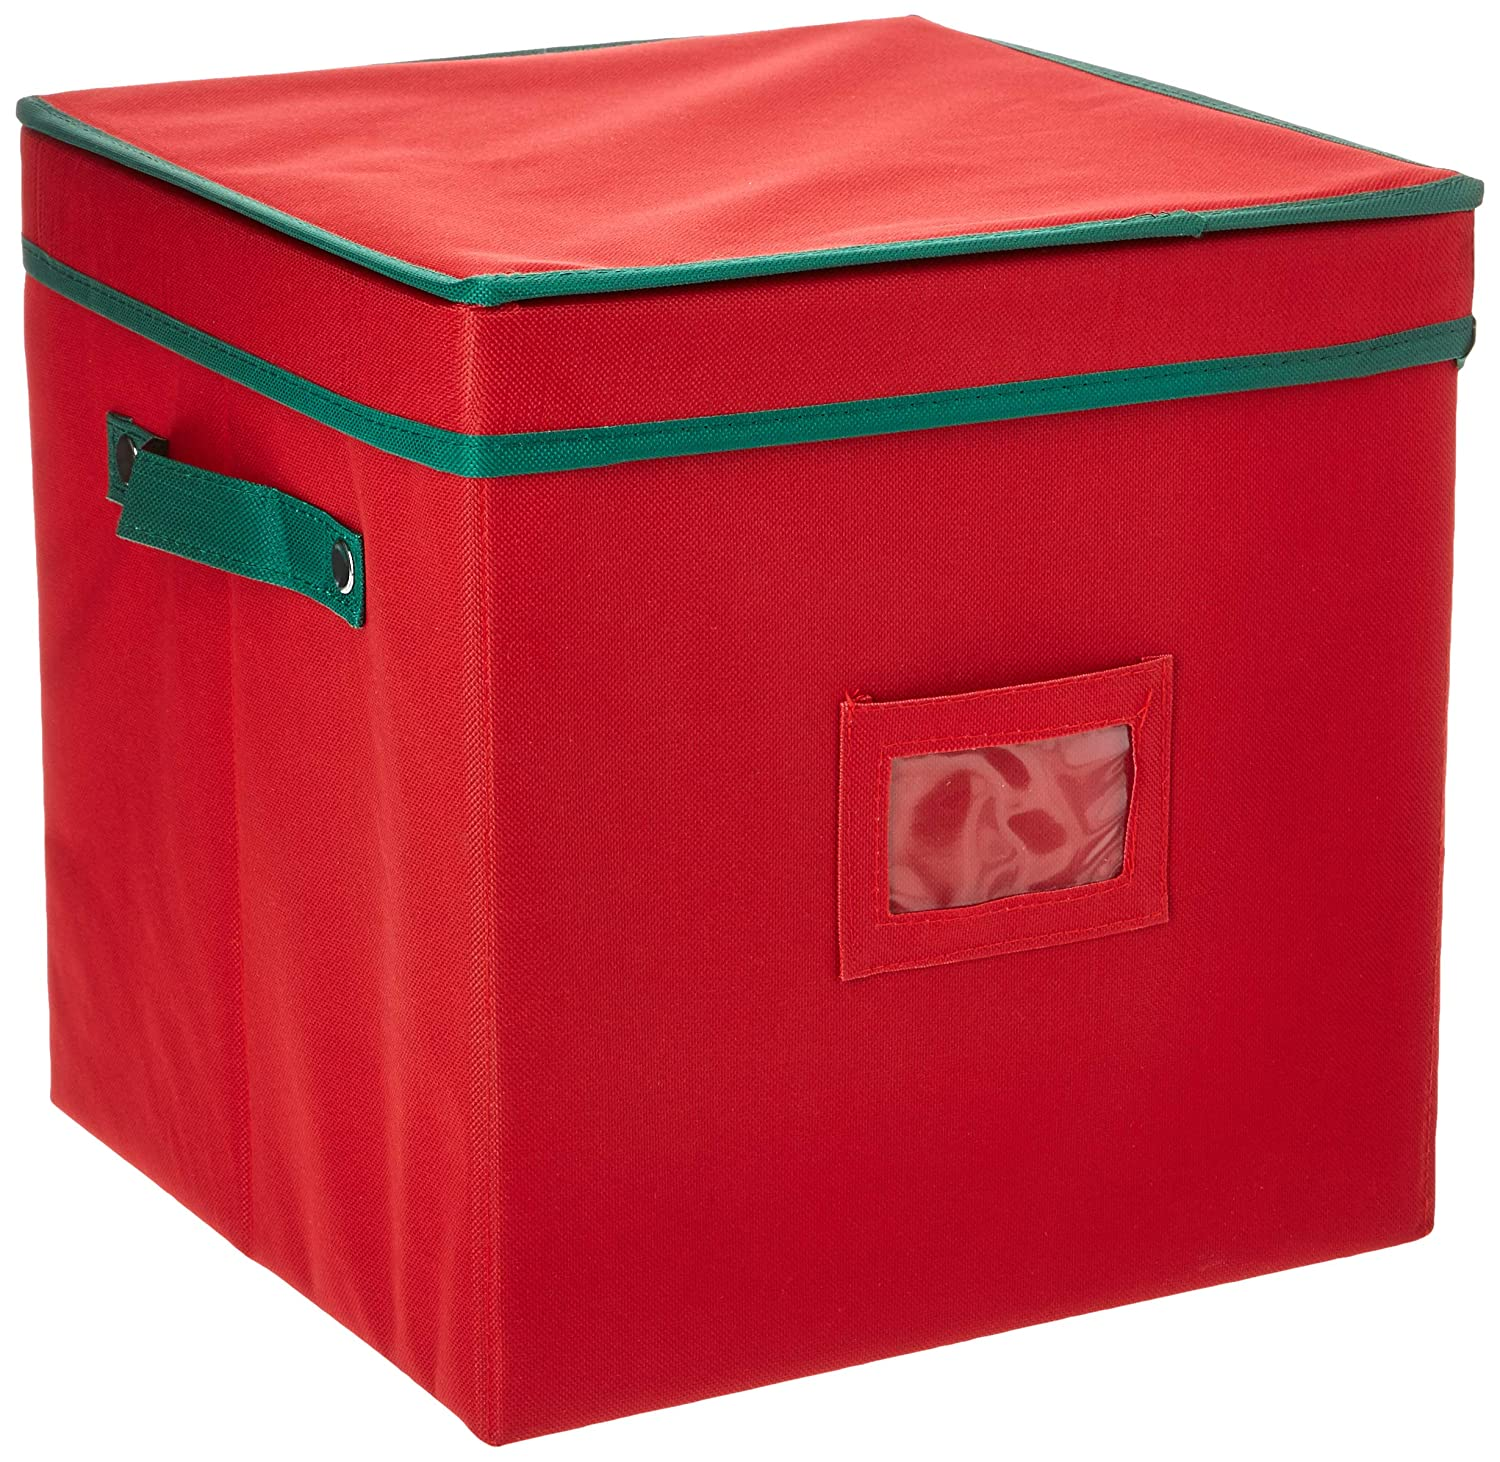 Elf Stor Ornament Storage Chest with Dividers - Holds 64 Balls, Red 1022 Ornament Chest Red